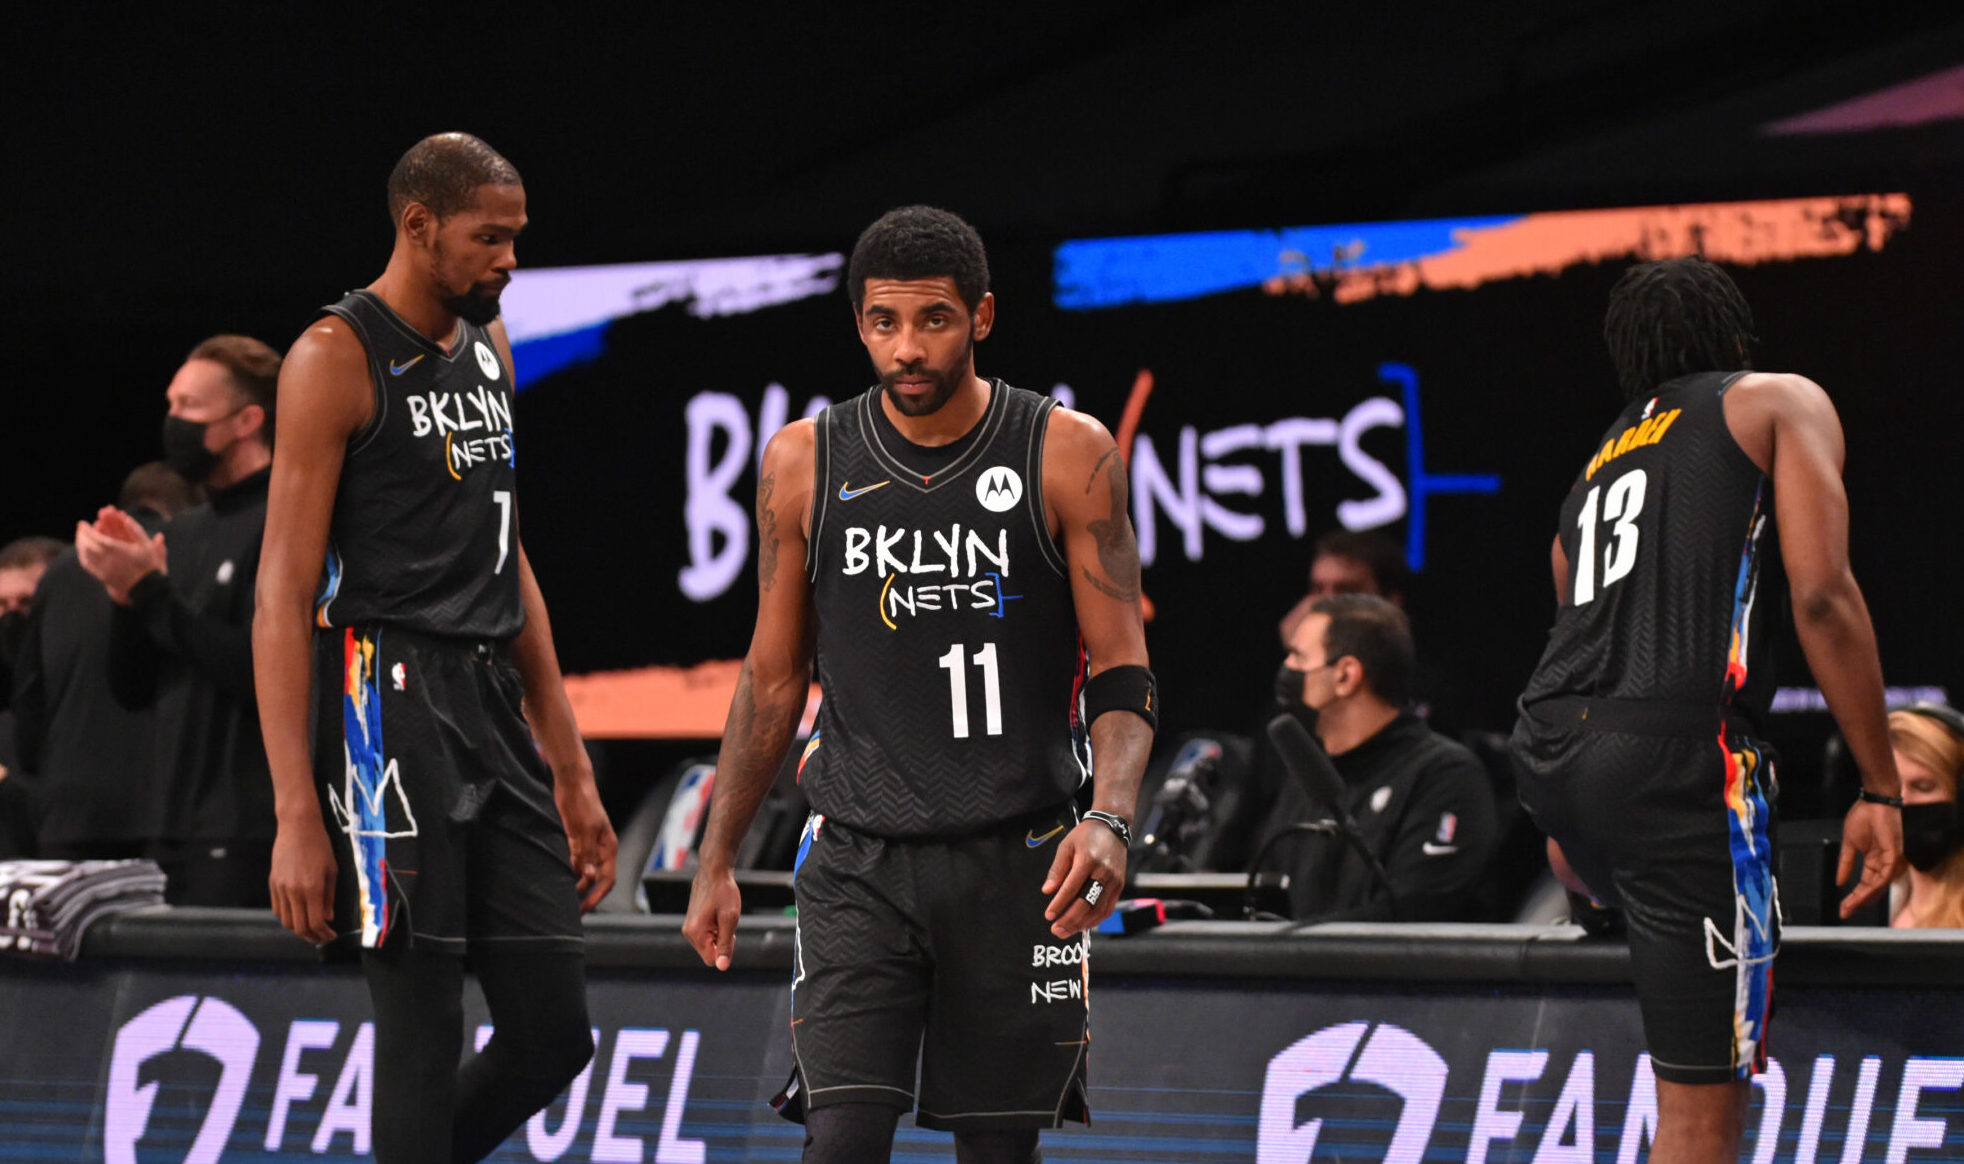 Nets' Big 3 finally in action together, ending 3-month absence